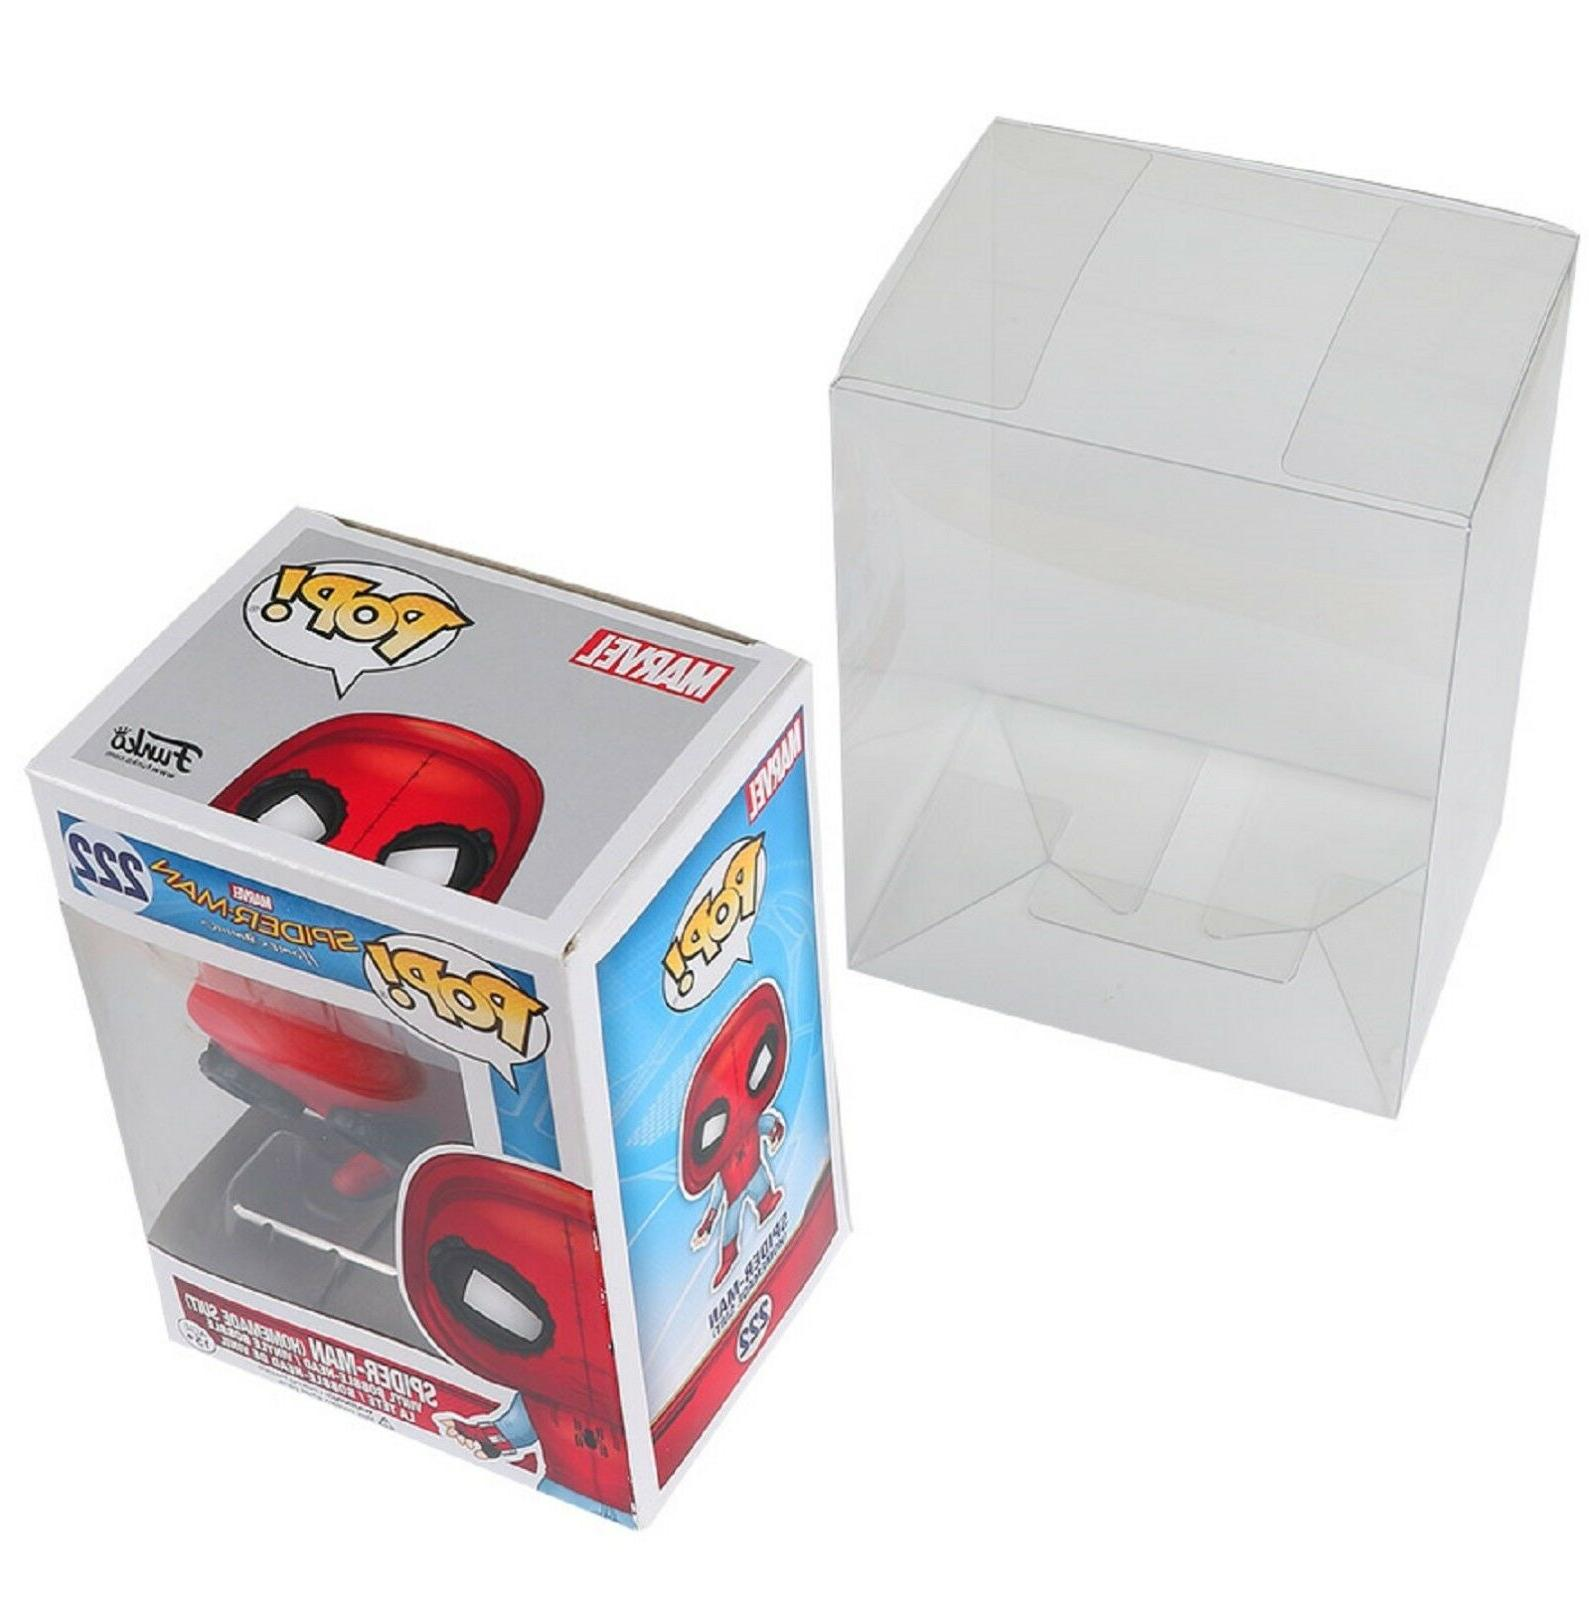 "Lot 100 Collectibles Funko Pop Protector 4"" inch"